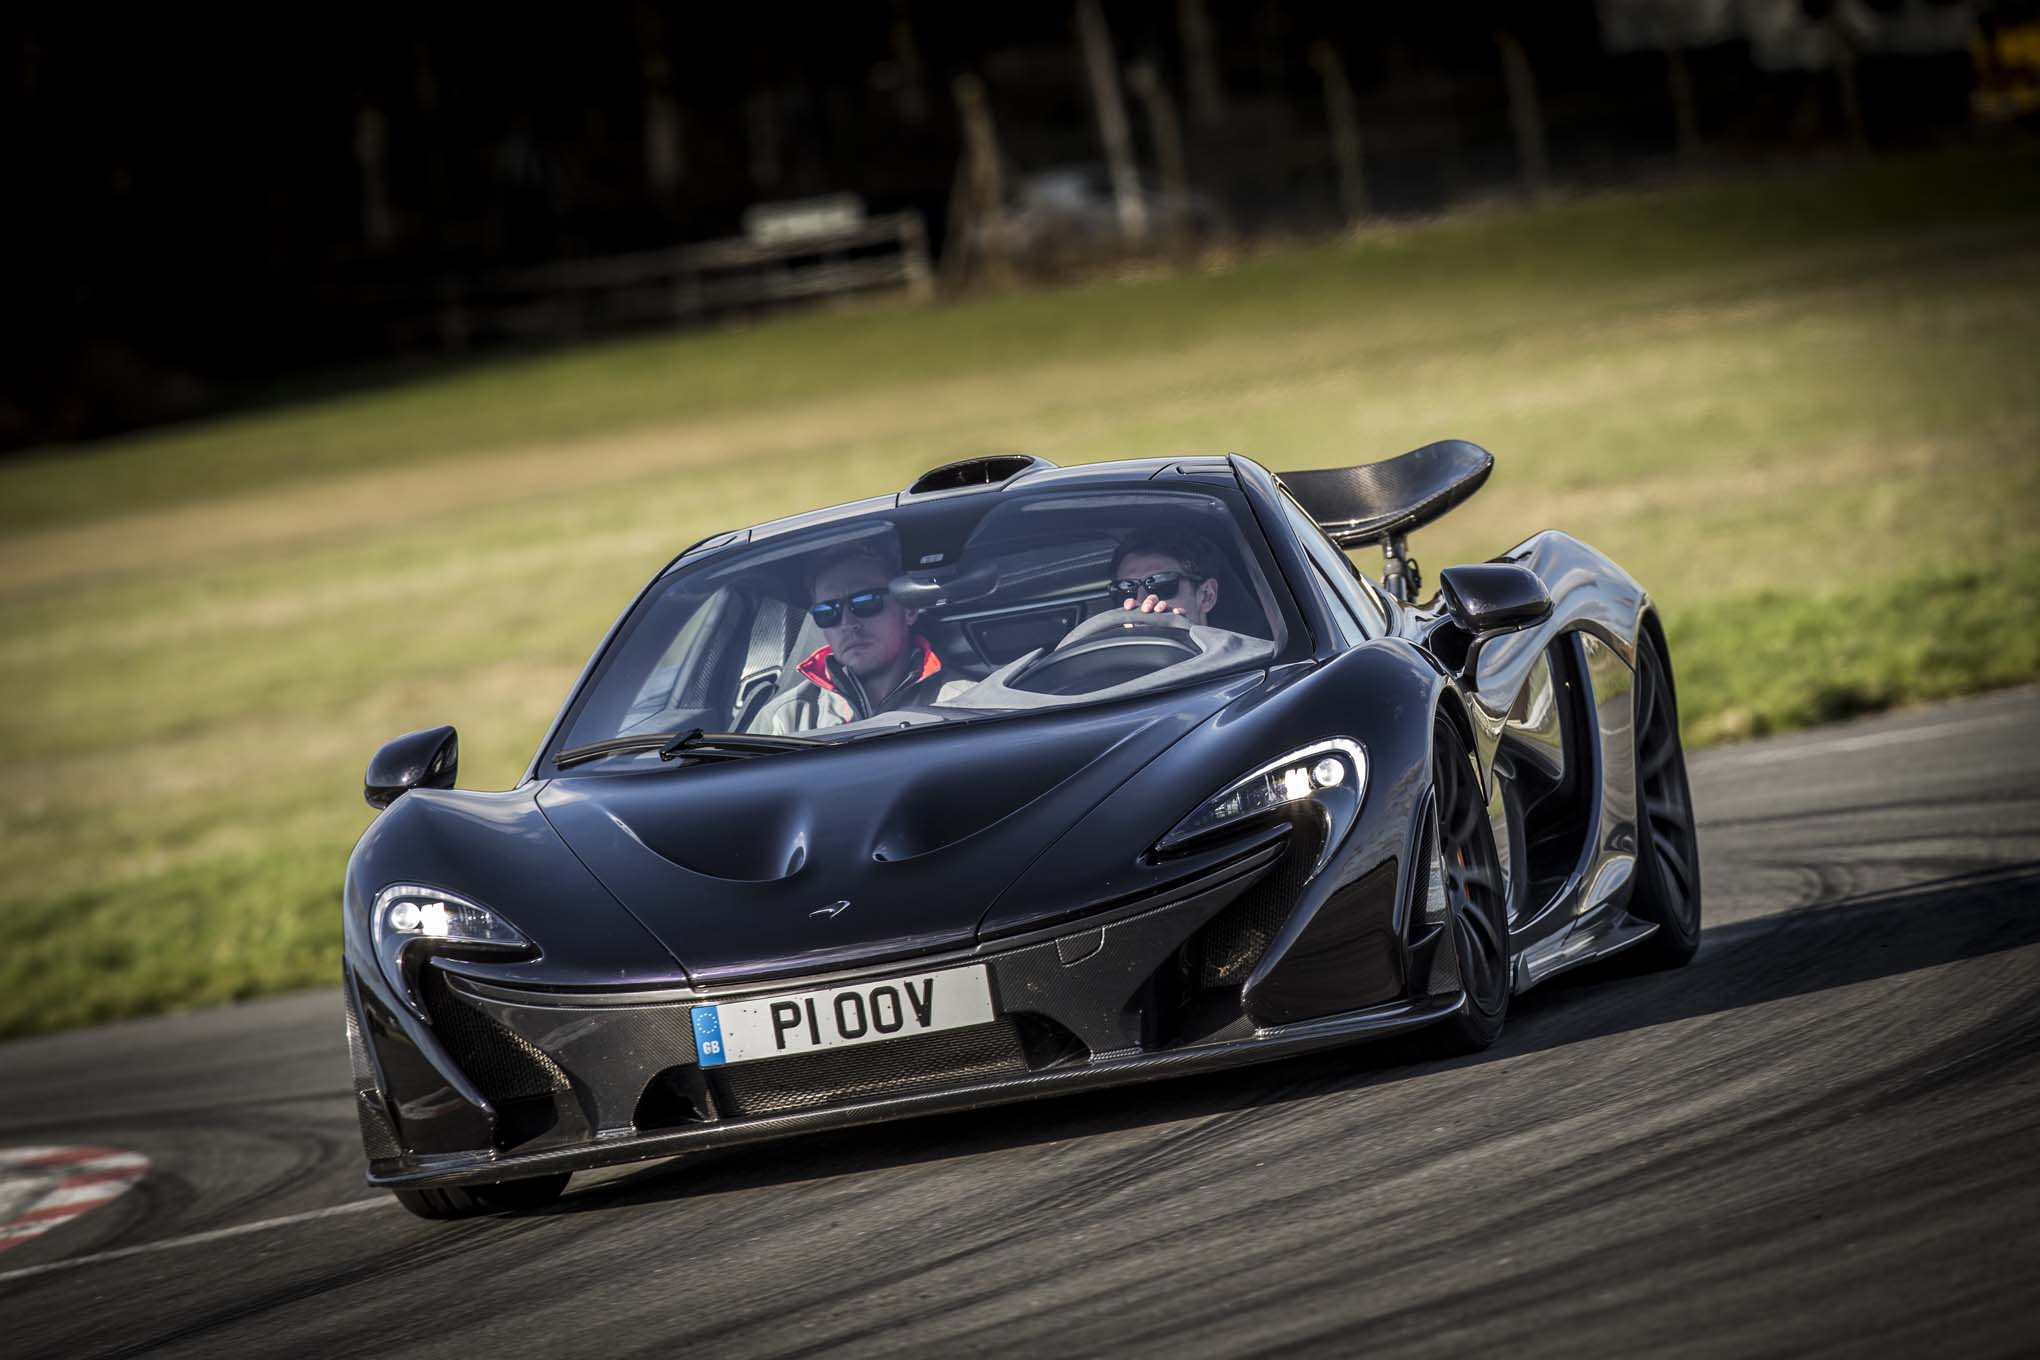 2014 Mclaren P1 Black Front End In Motion 061